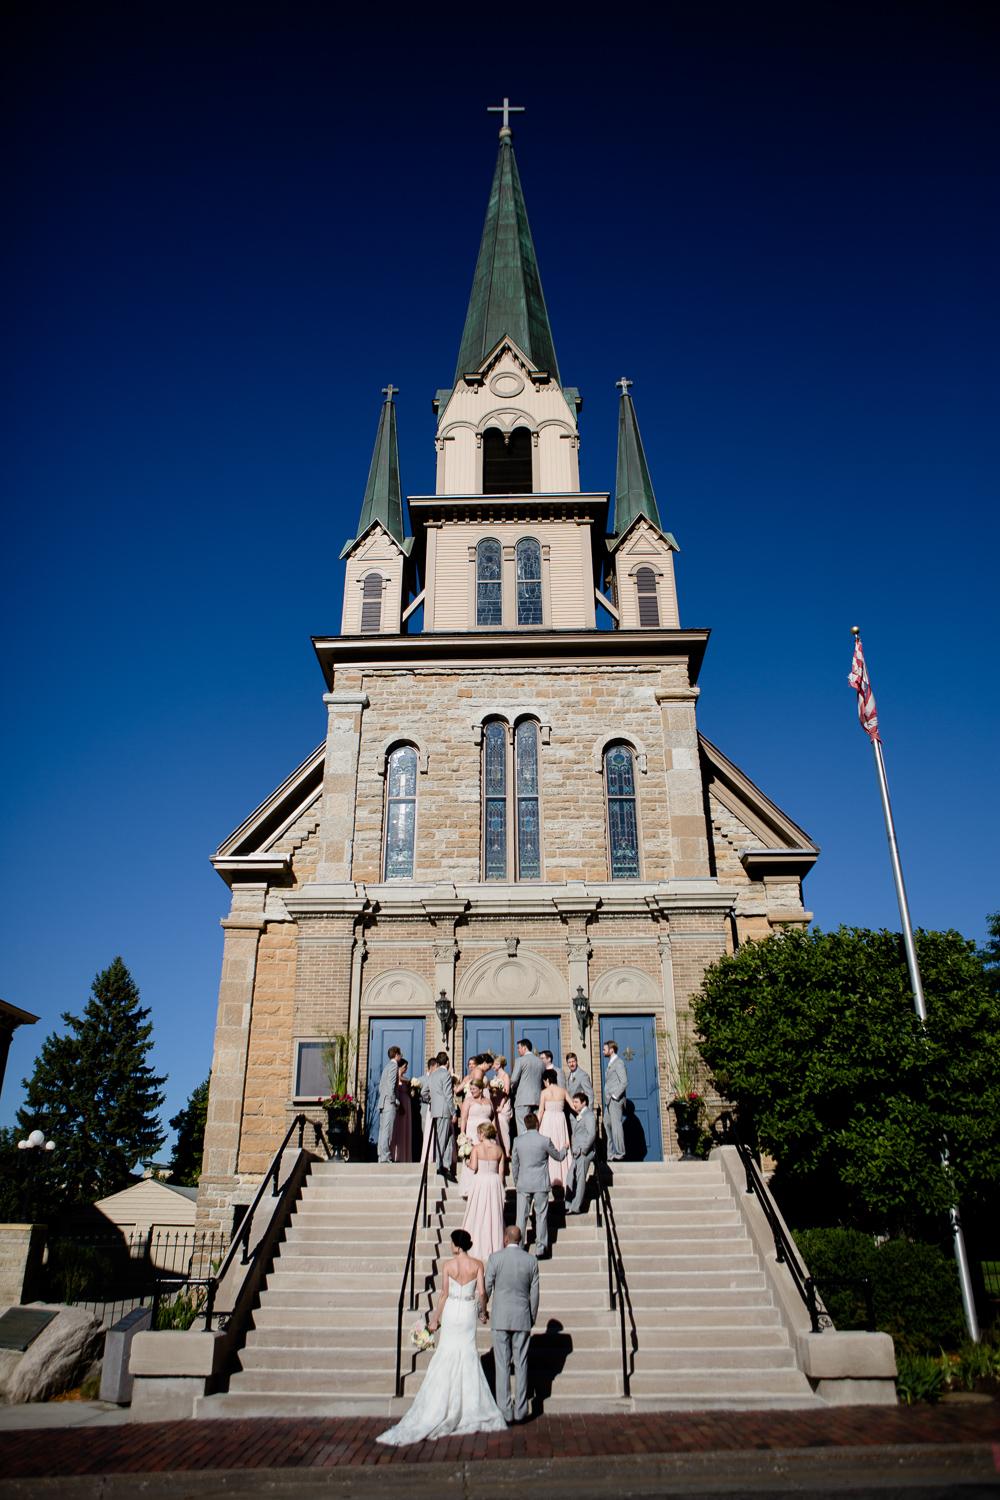 clewell minneapolis wedding photographer-10129168368330230.jpg